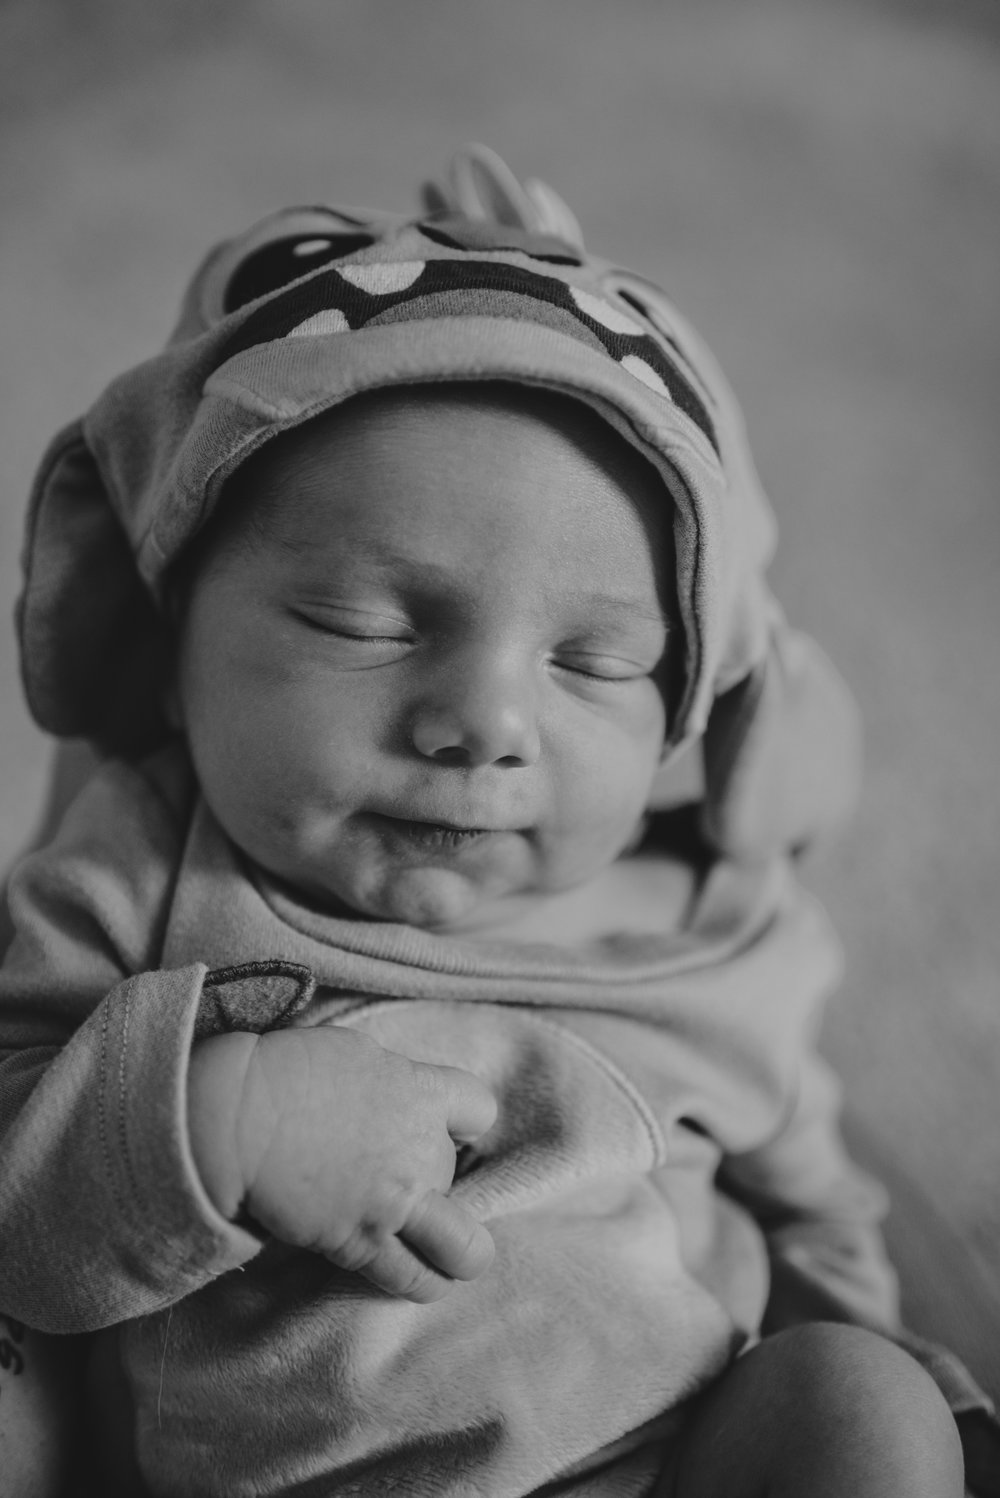 The newborn baby sleeps dressed as the Disney character Stitch while in his nursery in Wake Forest, a black and white image by Rose Trail Images.